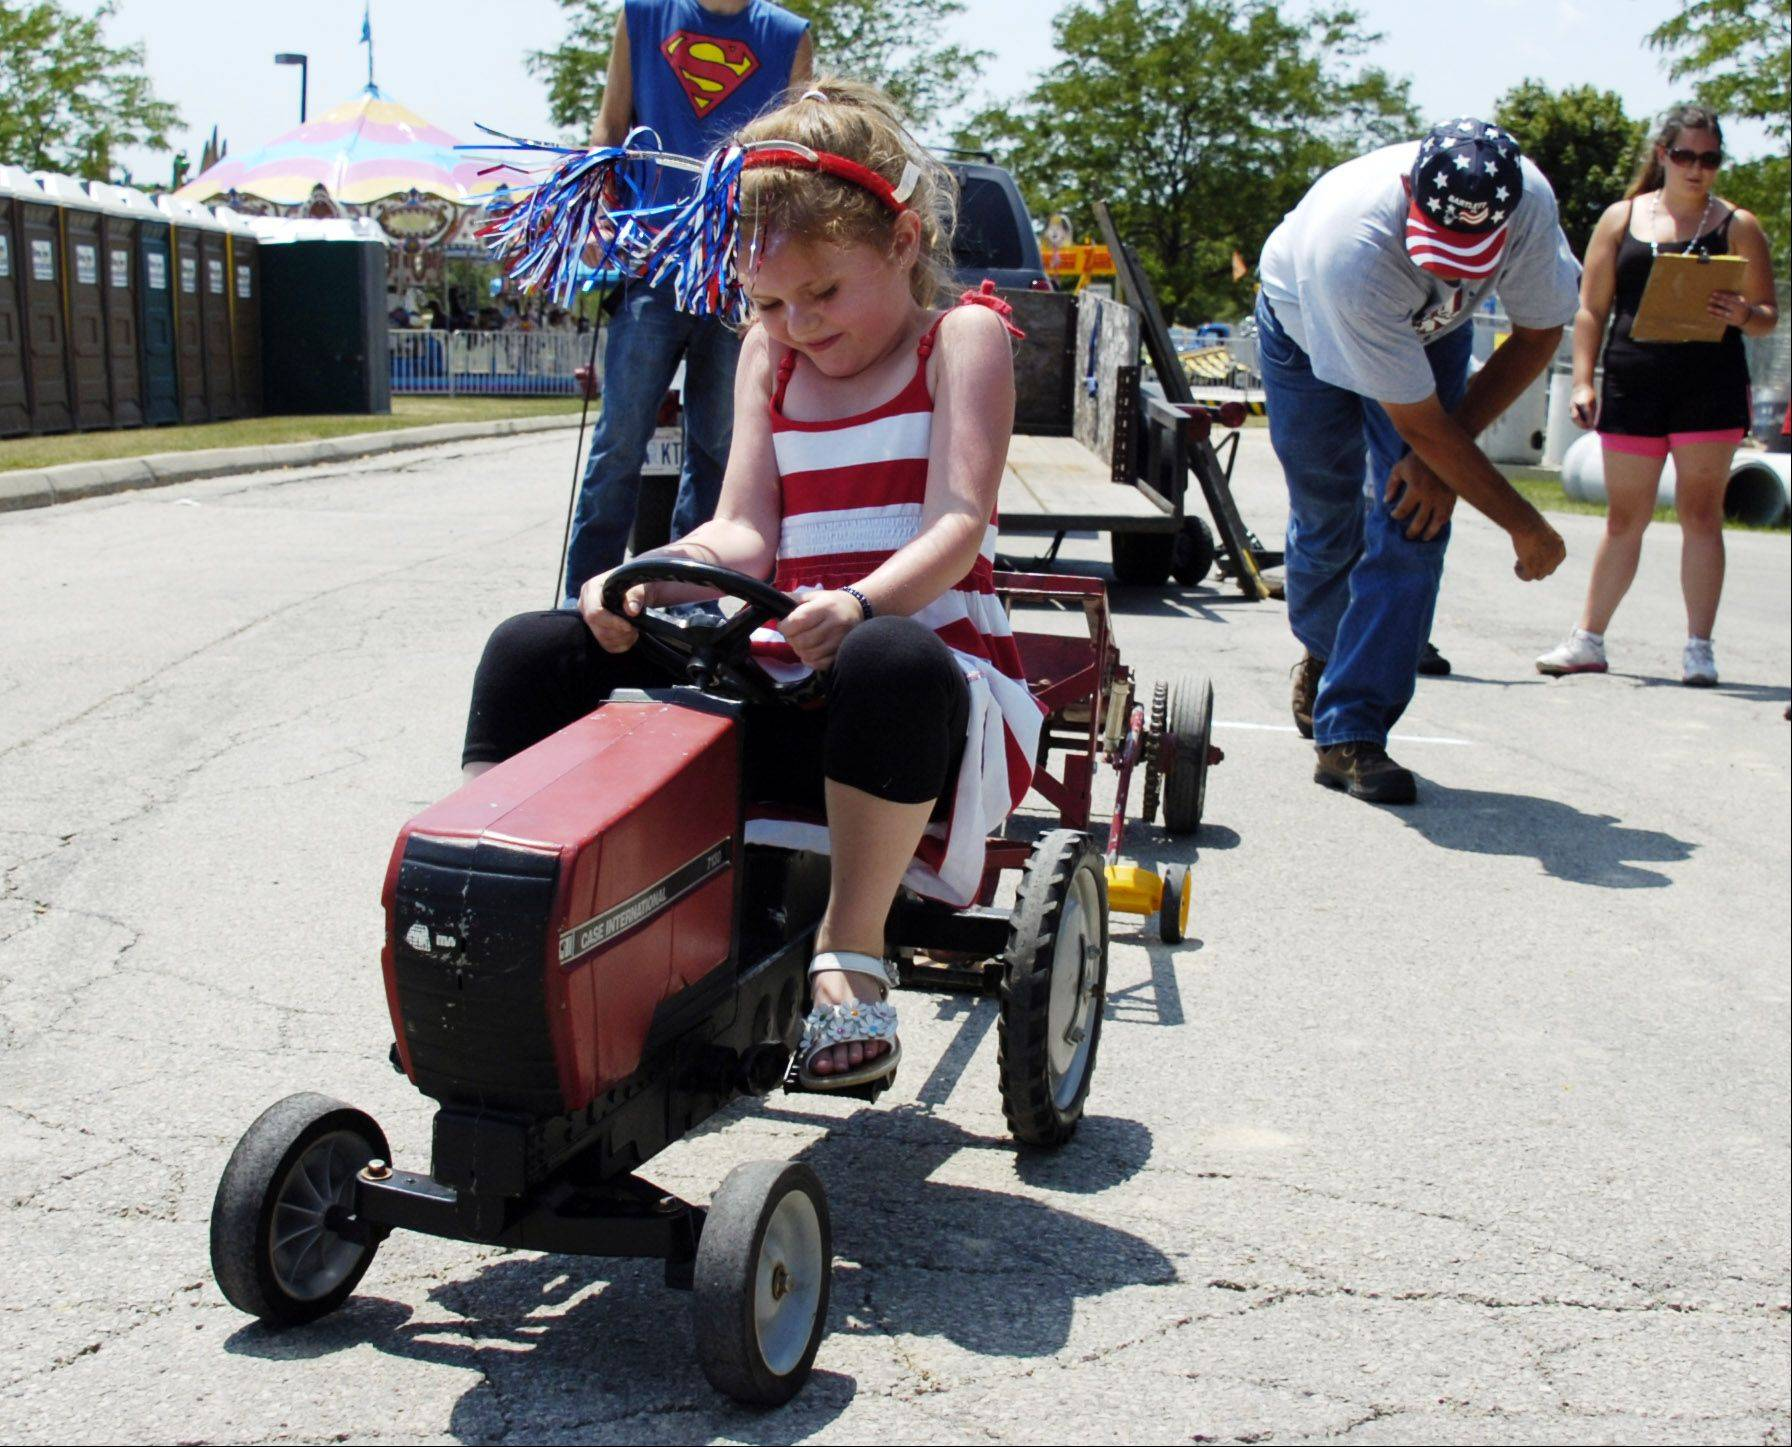 Emily Fagan, 5, of Bartlett in the extreme heat competes in the 40 lb weight division class tractor pull at the Bartlett Fourth of July festival on Wednesday.